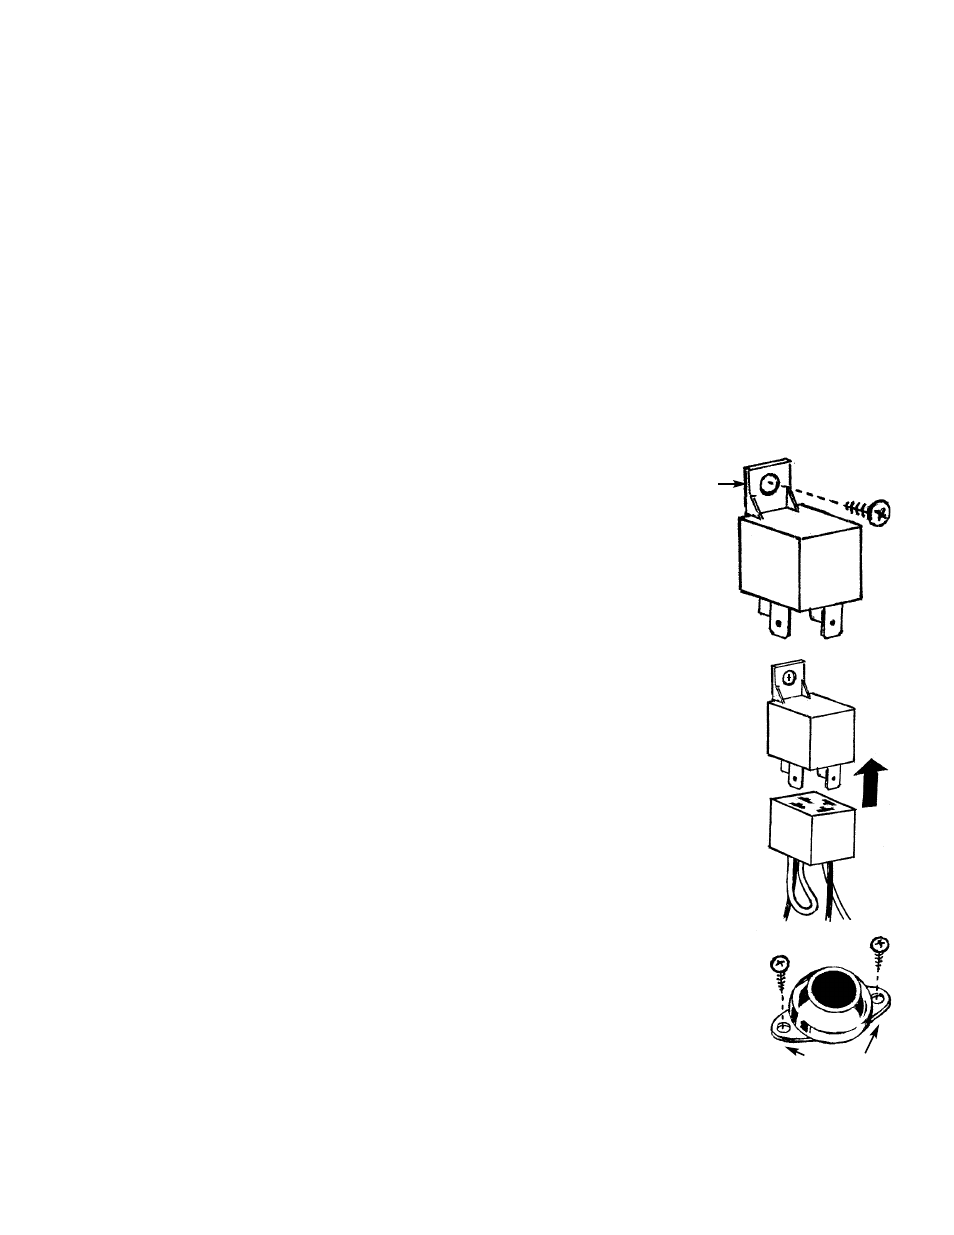 hight resolution of wolo hwk 1 air horn wiring kit user manual